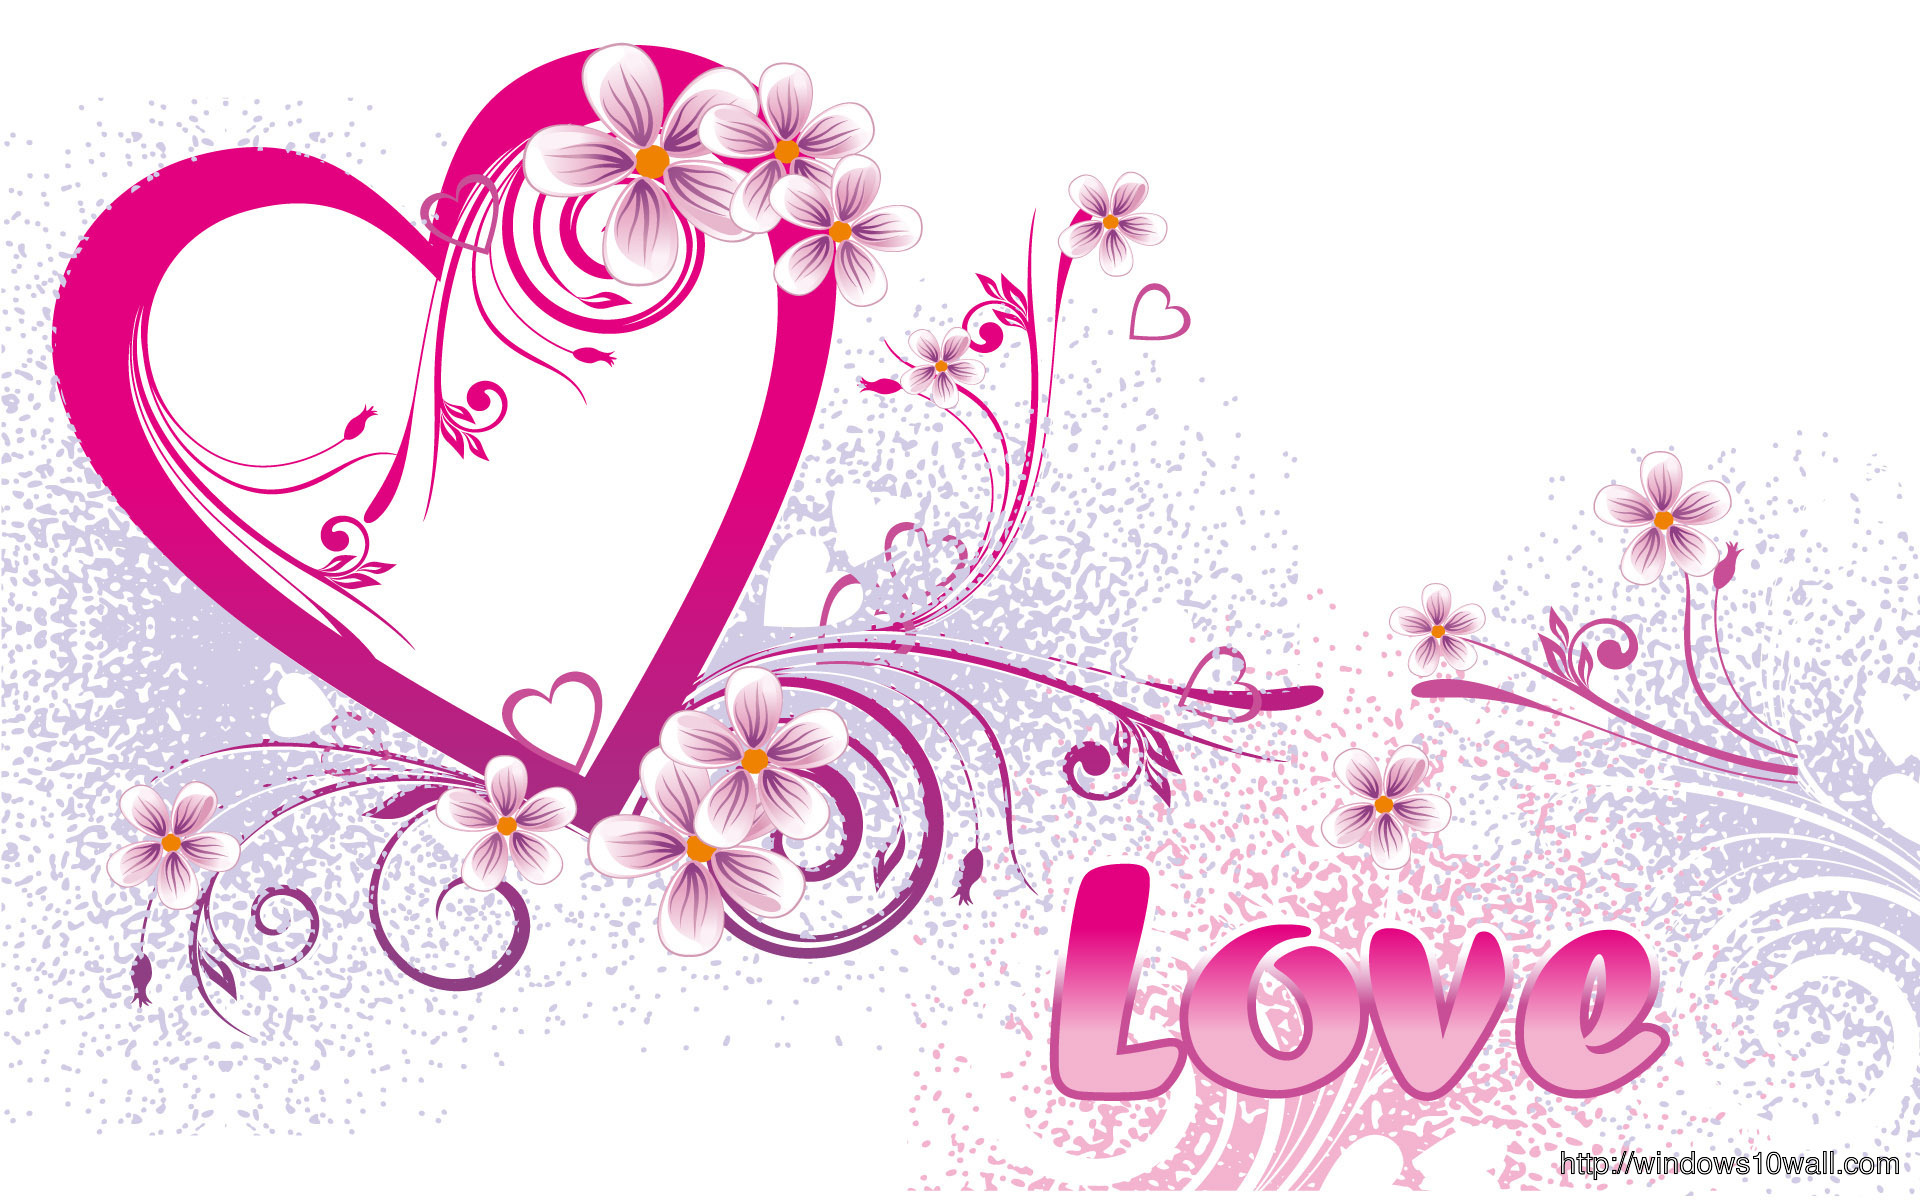 Love Wallpaper Designs : Latest Love Design Background Wallpaper - windows 10 Wallpapers